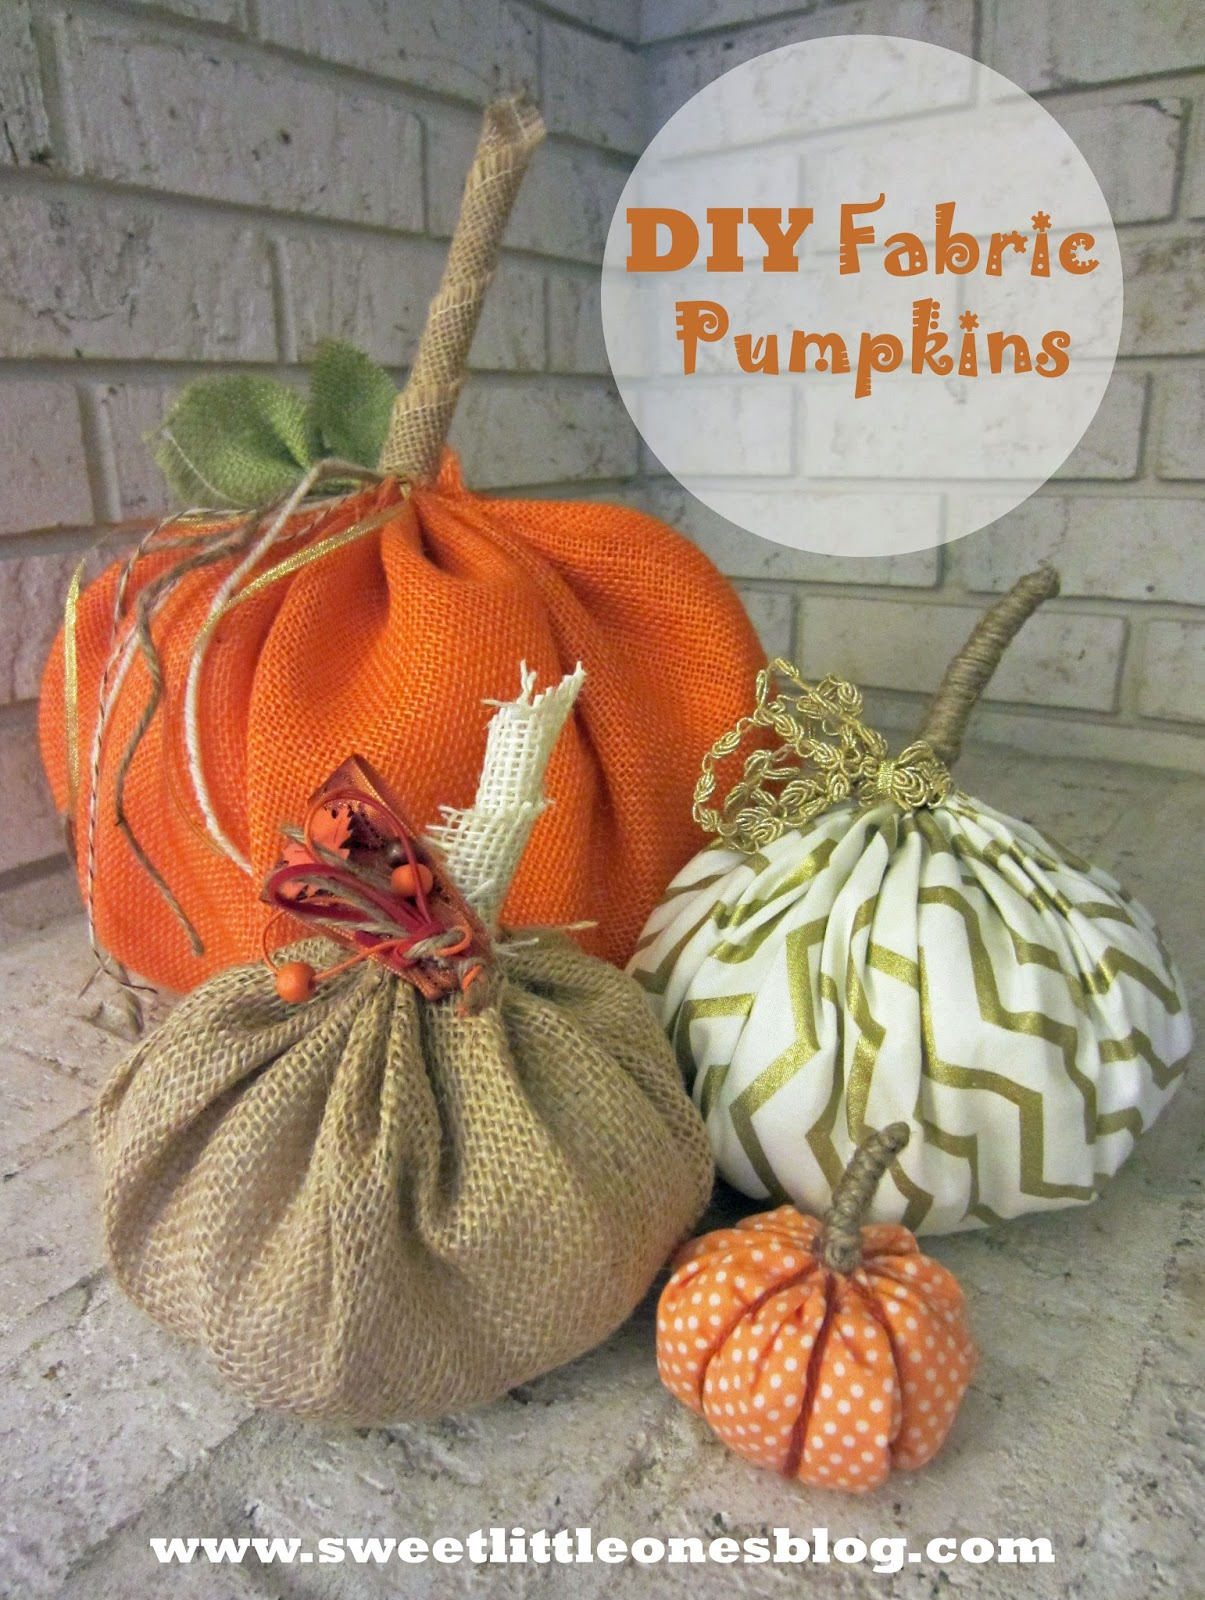 DIY Fabric and Burlap Pumpkins - www.sweetlittleonesblog.com